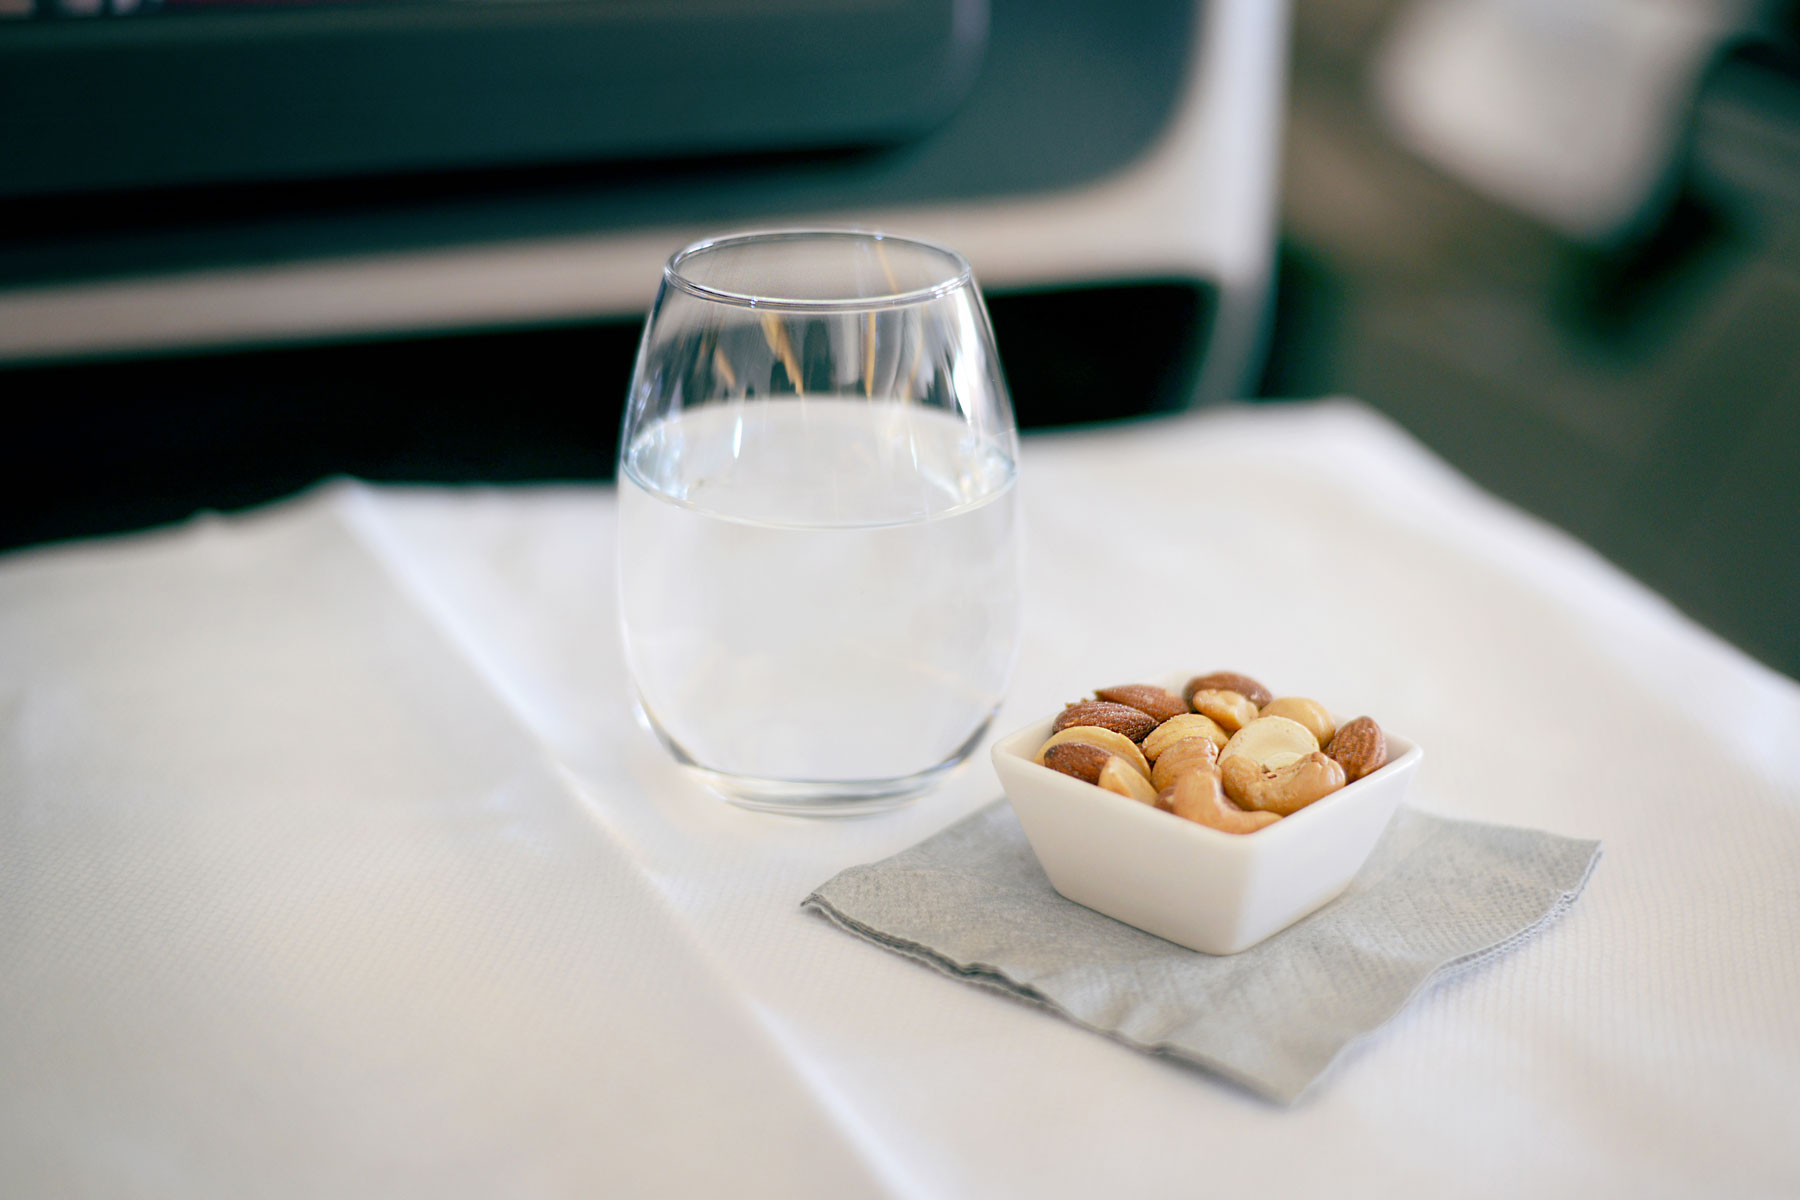 peanuts and a glass of water placed on an airplane seat tray